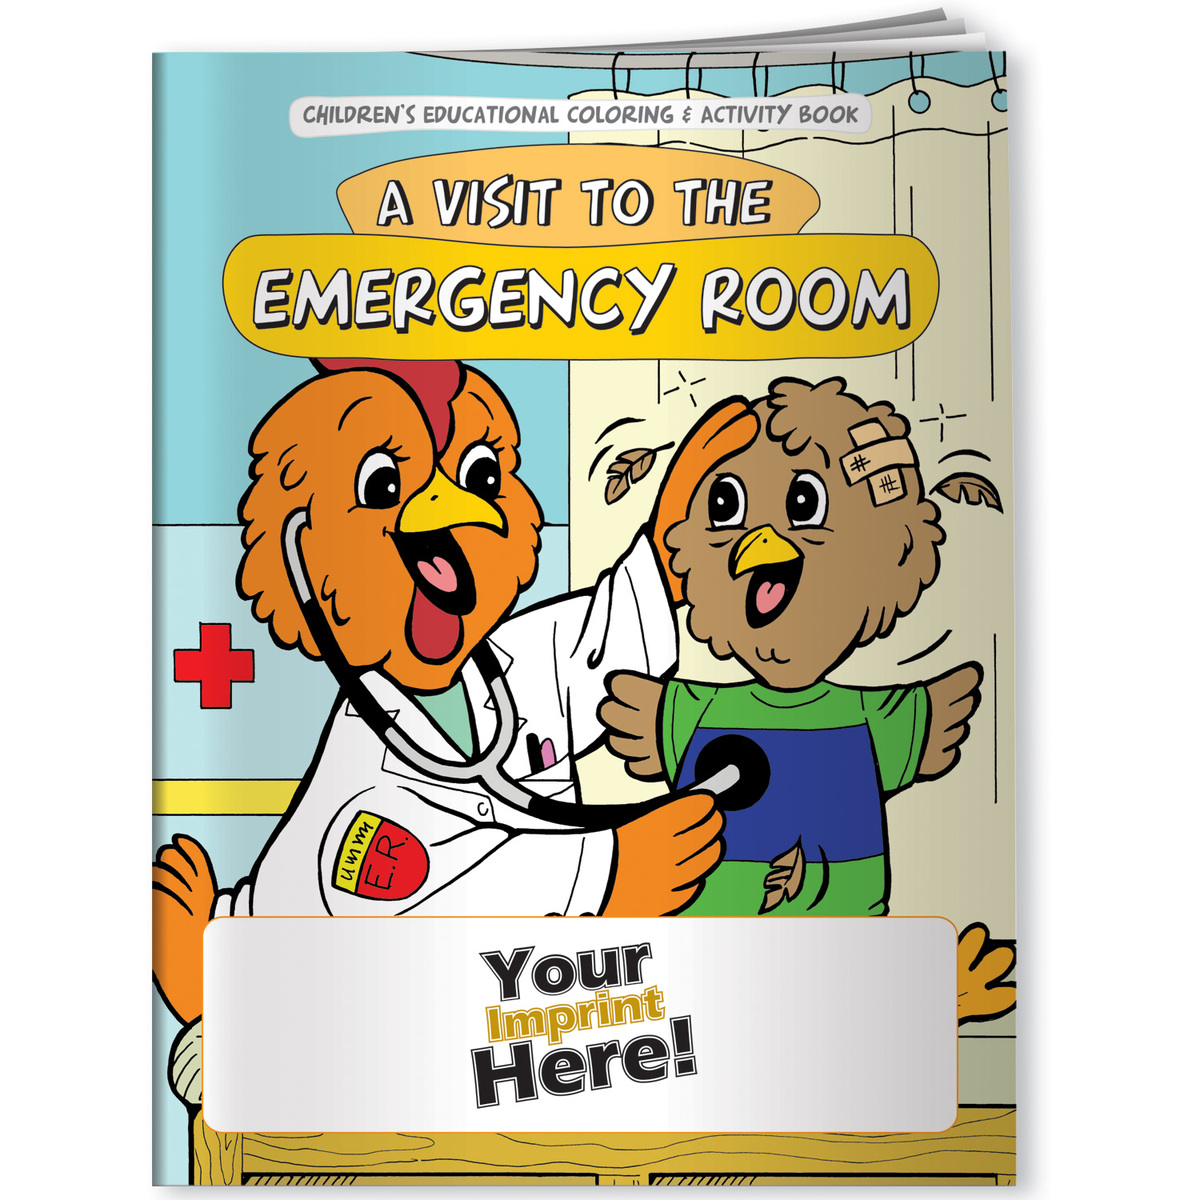 Children's Coloring Book - A Visit to the Emergency Room